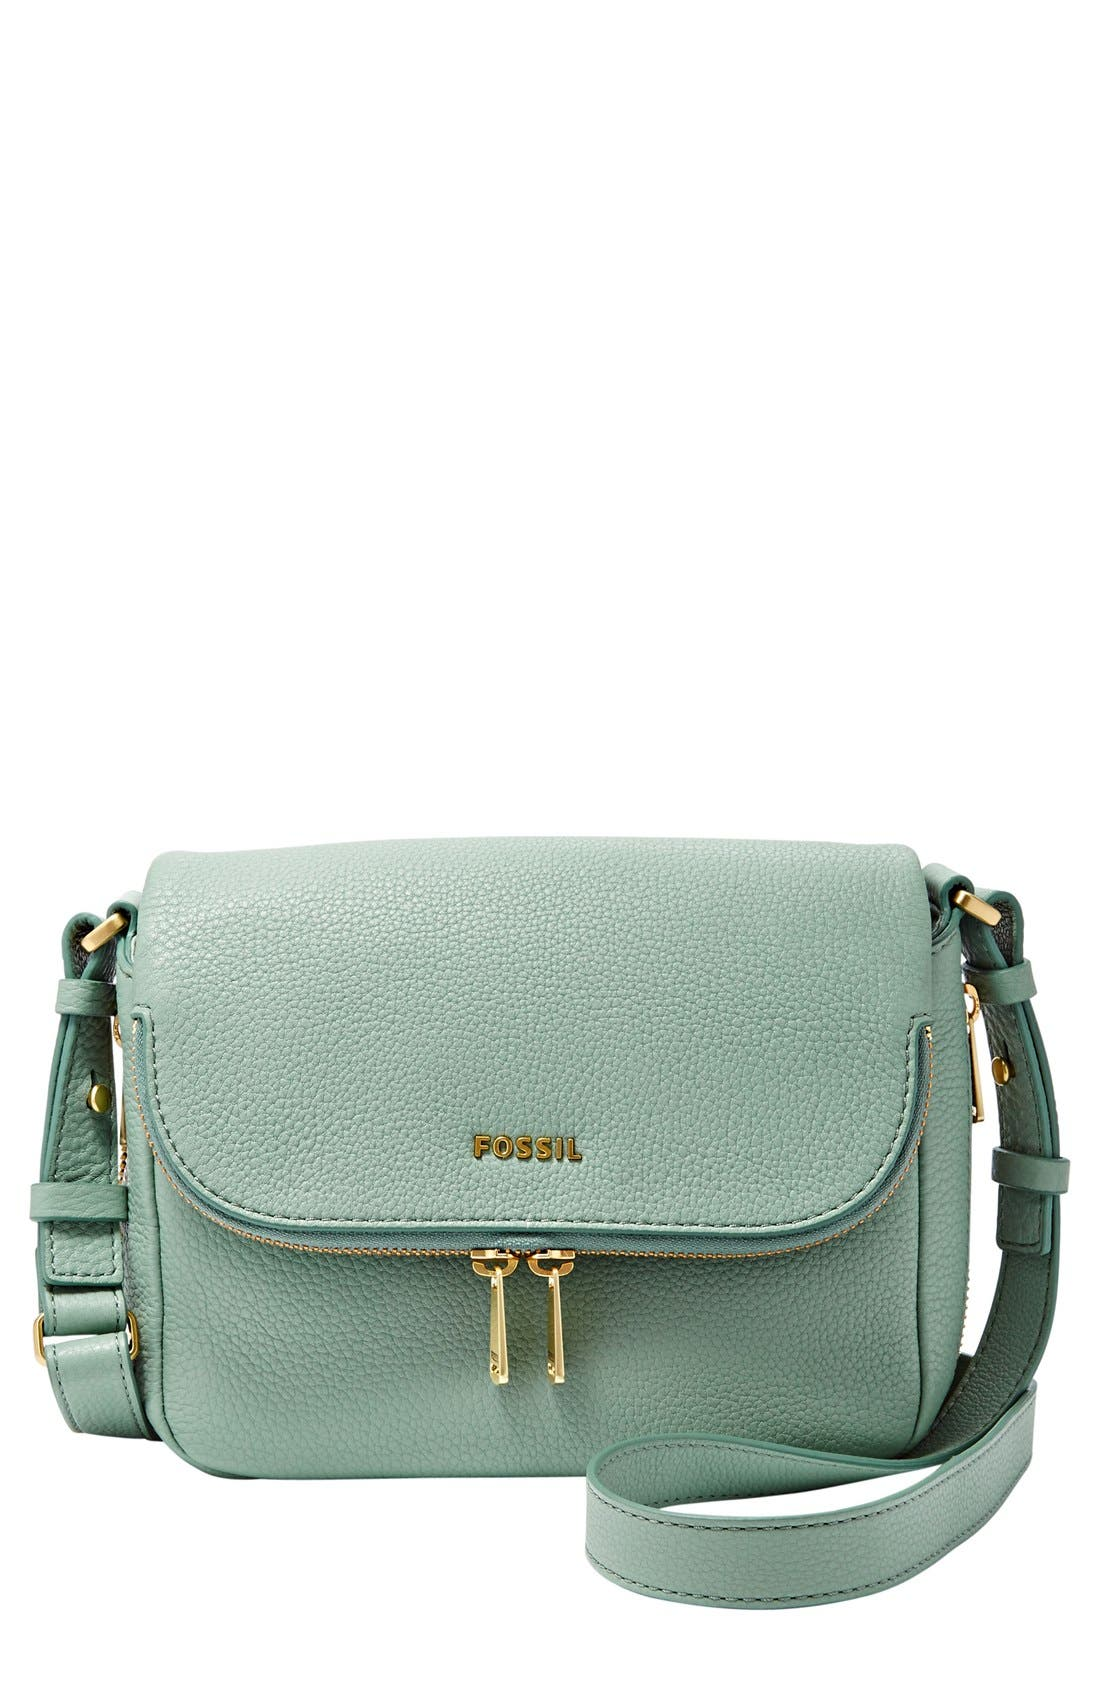 Alternate Image 1 Selected - Fossil 'Small Preston' Crossbody Bag